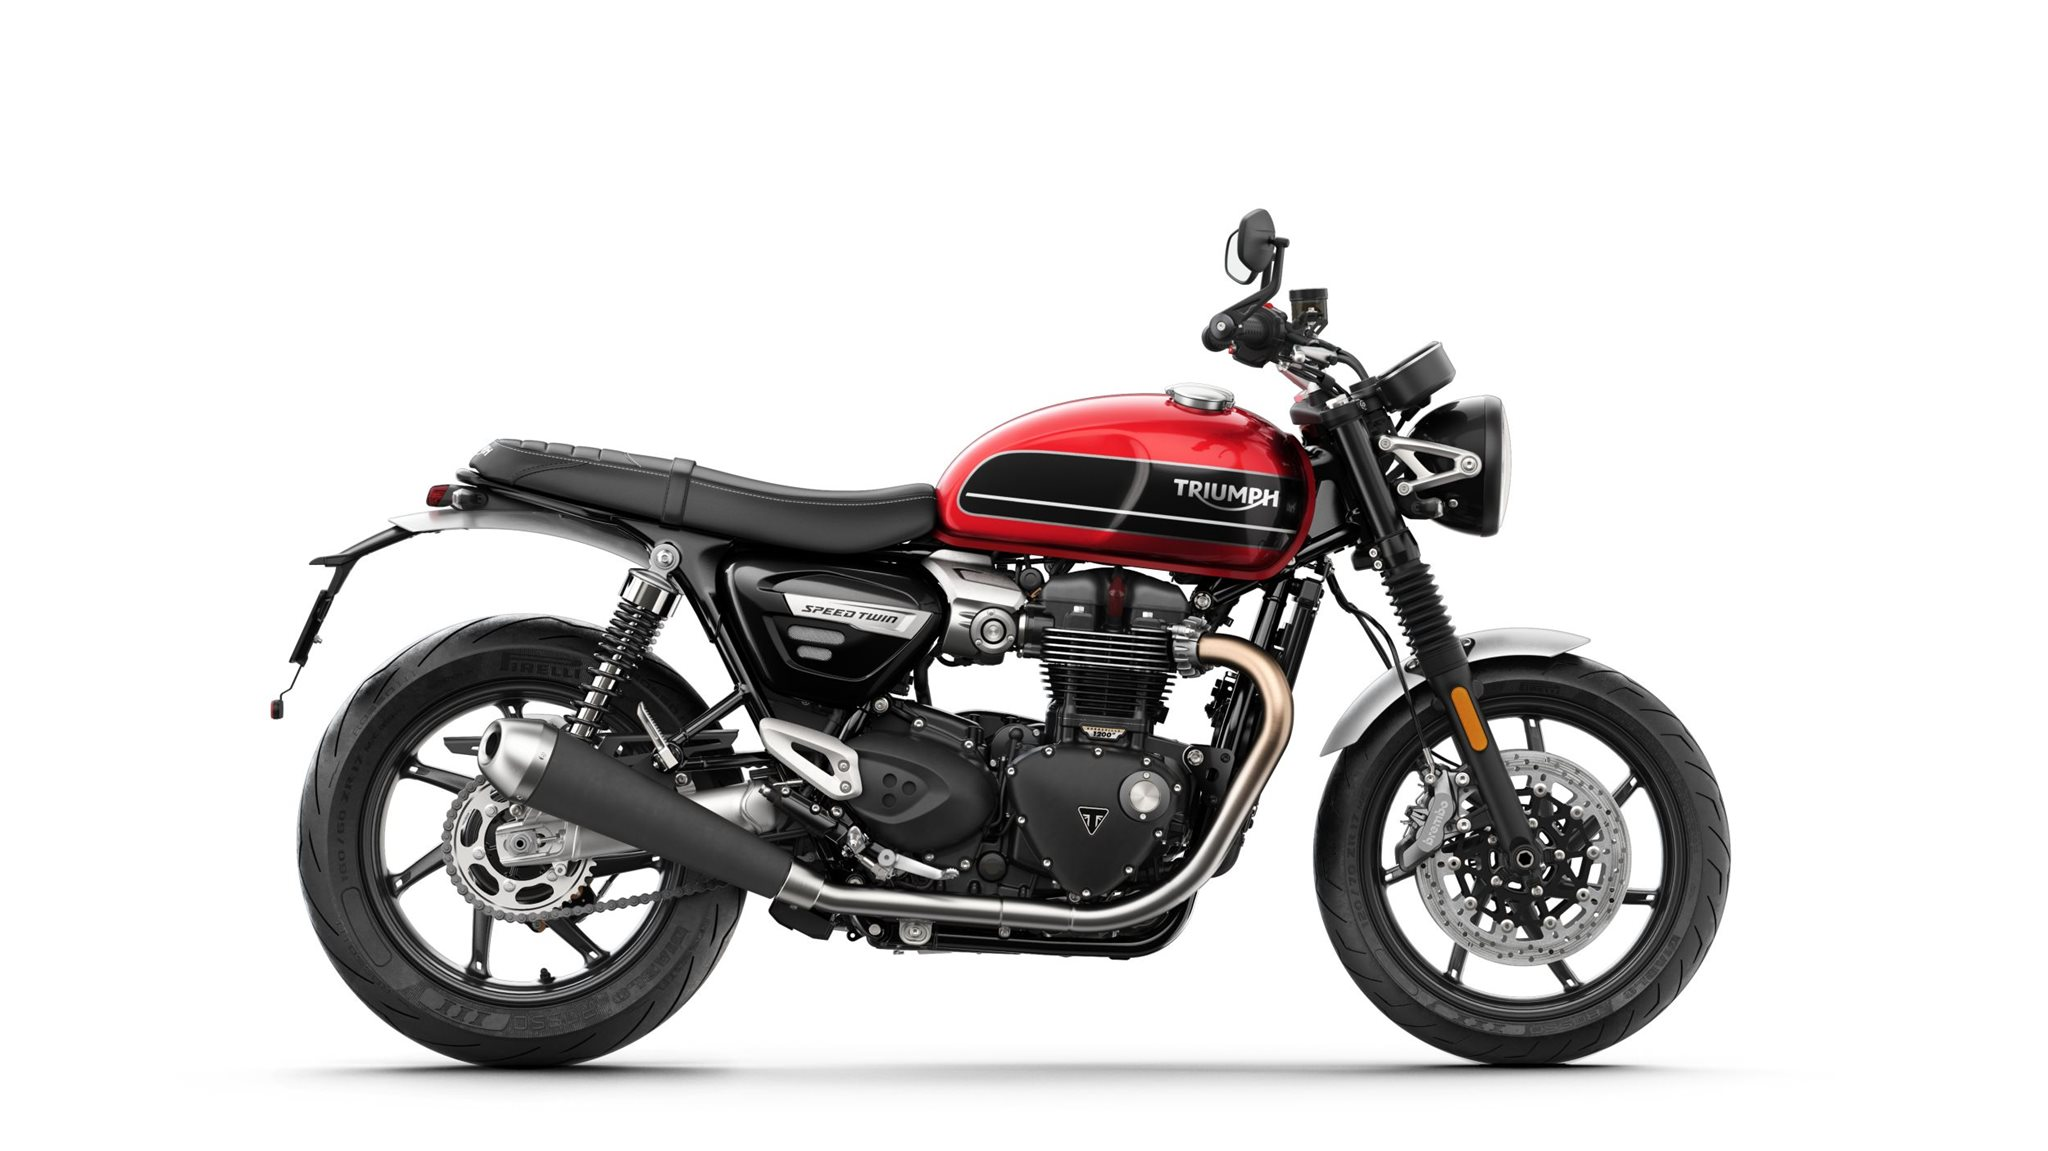 Triumph Speed Twin 1200 - All technical Data of the Model Speed Twin 1200 from Triumph